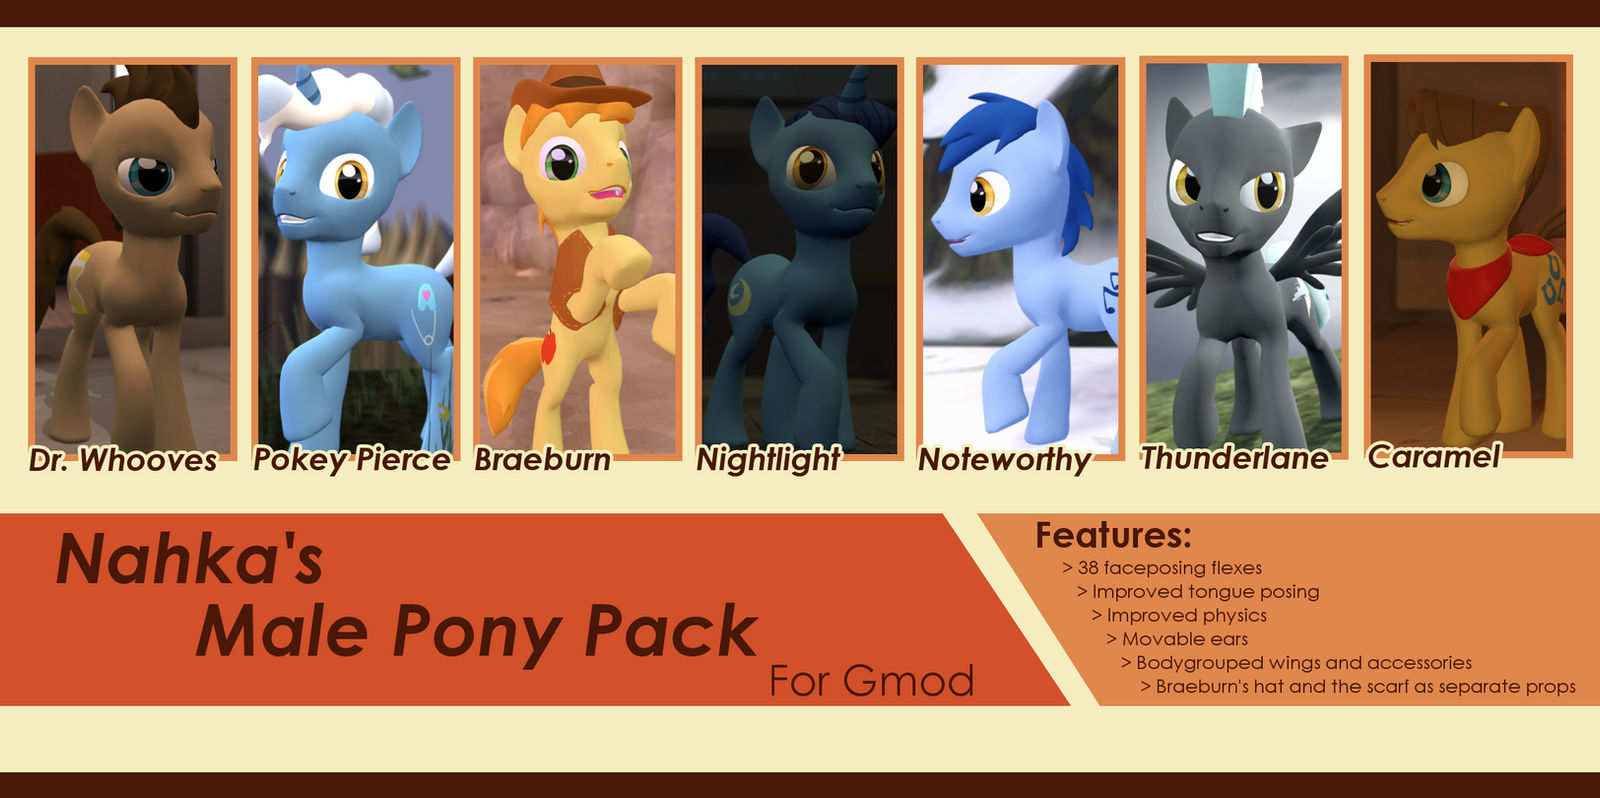 Male pony pack release